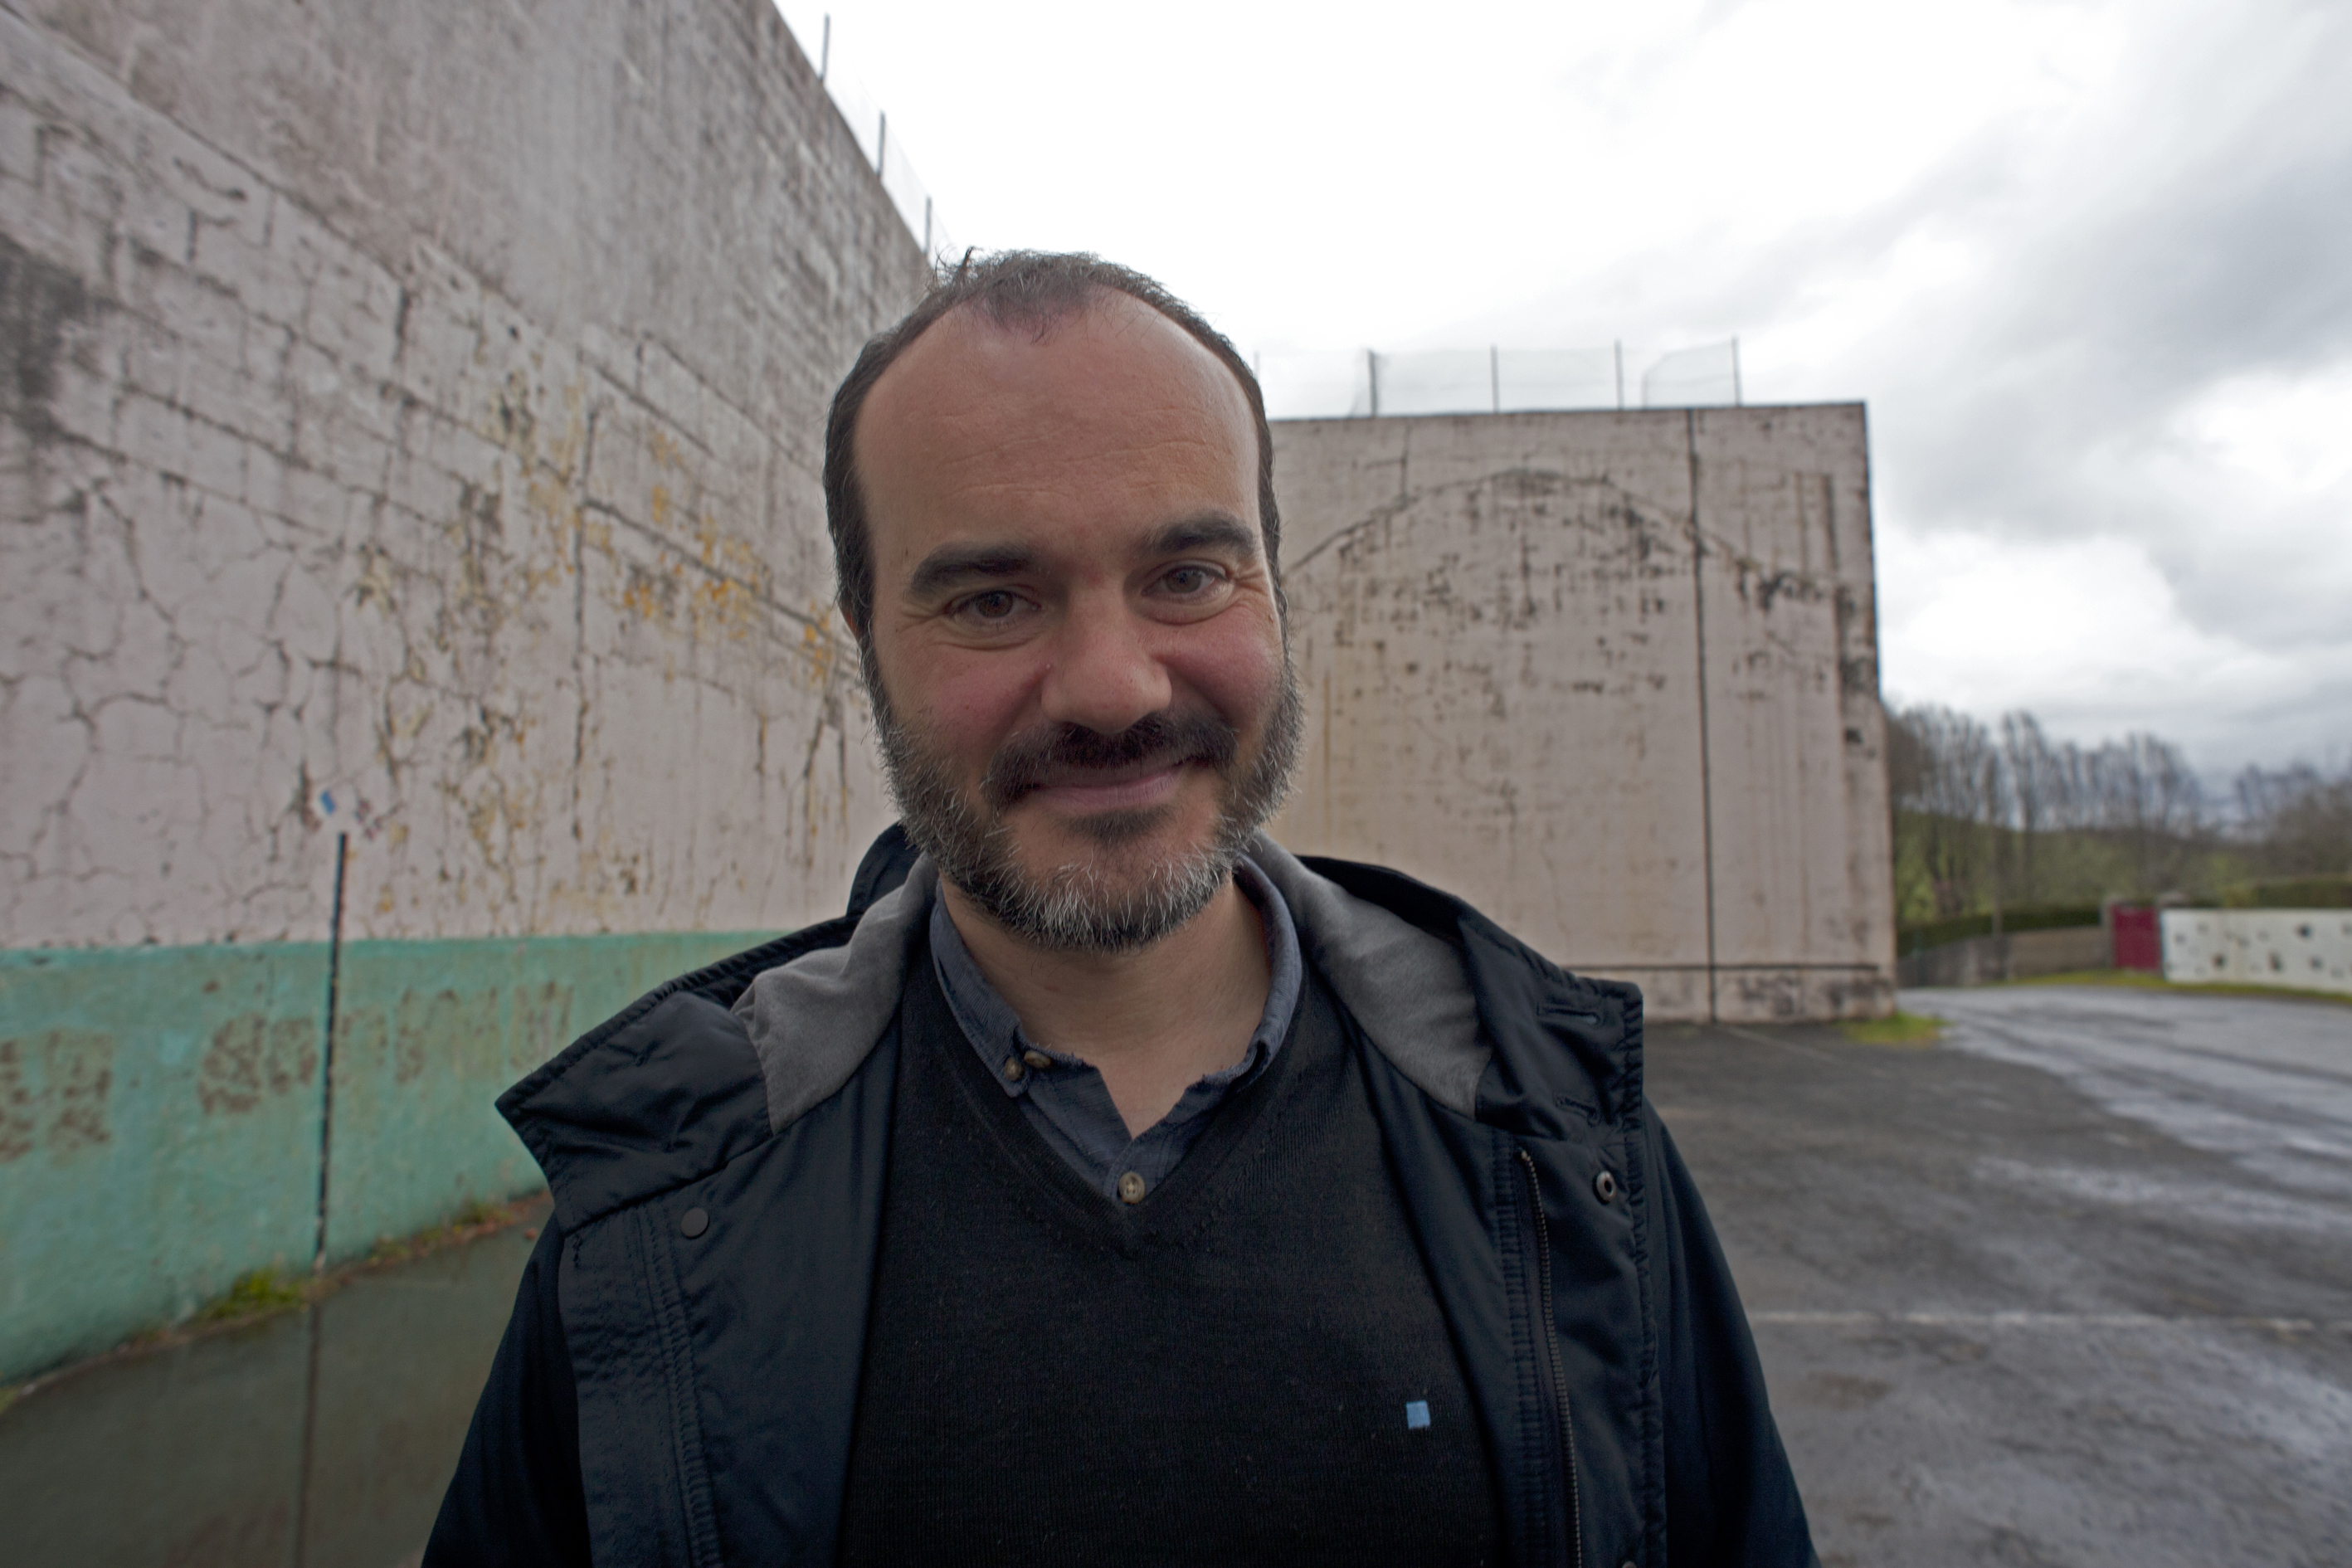 The Etxepare Basque Institute is part of the festival. Pictured, Oskar Alegria, he is at the festival with two titles (foto Jone Bordato)